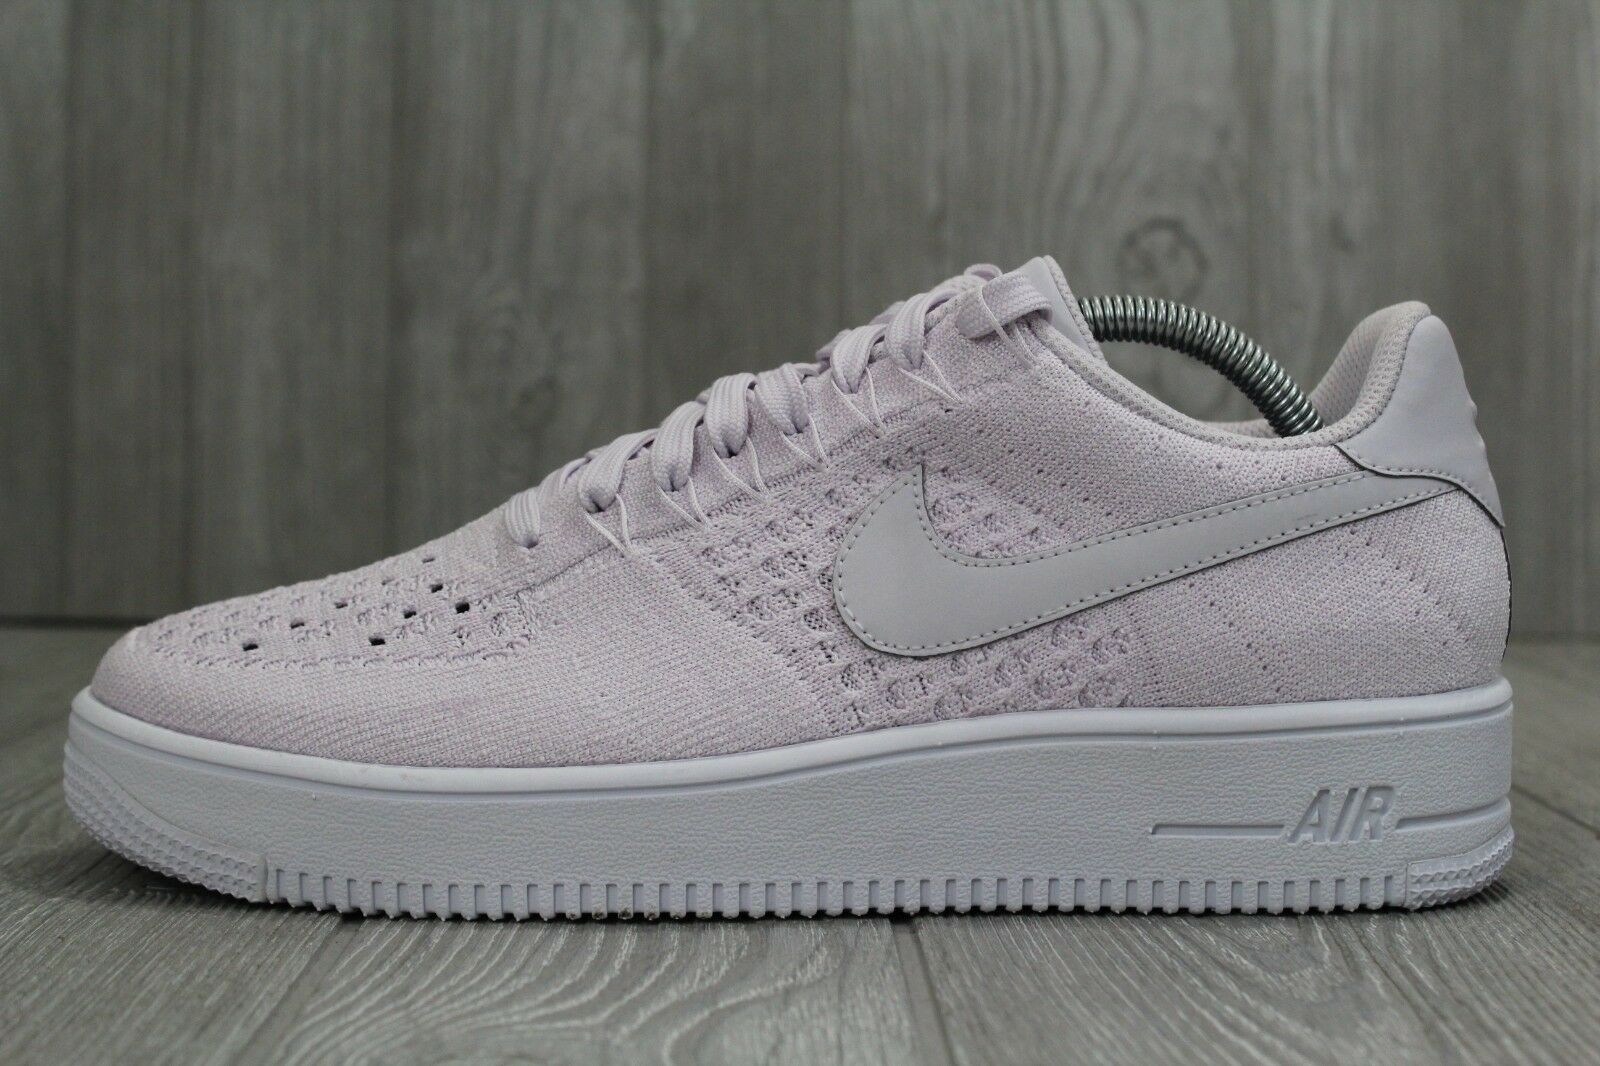 32 Nike Air Force 1 Ultra Flyknit Low Light Violet Men's Shoes Sz 9.5 817419 500 Seasonal price cuts, discount benefits